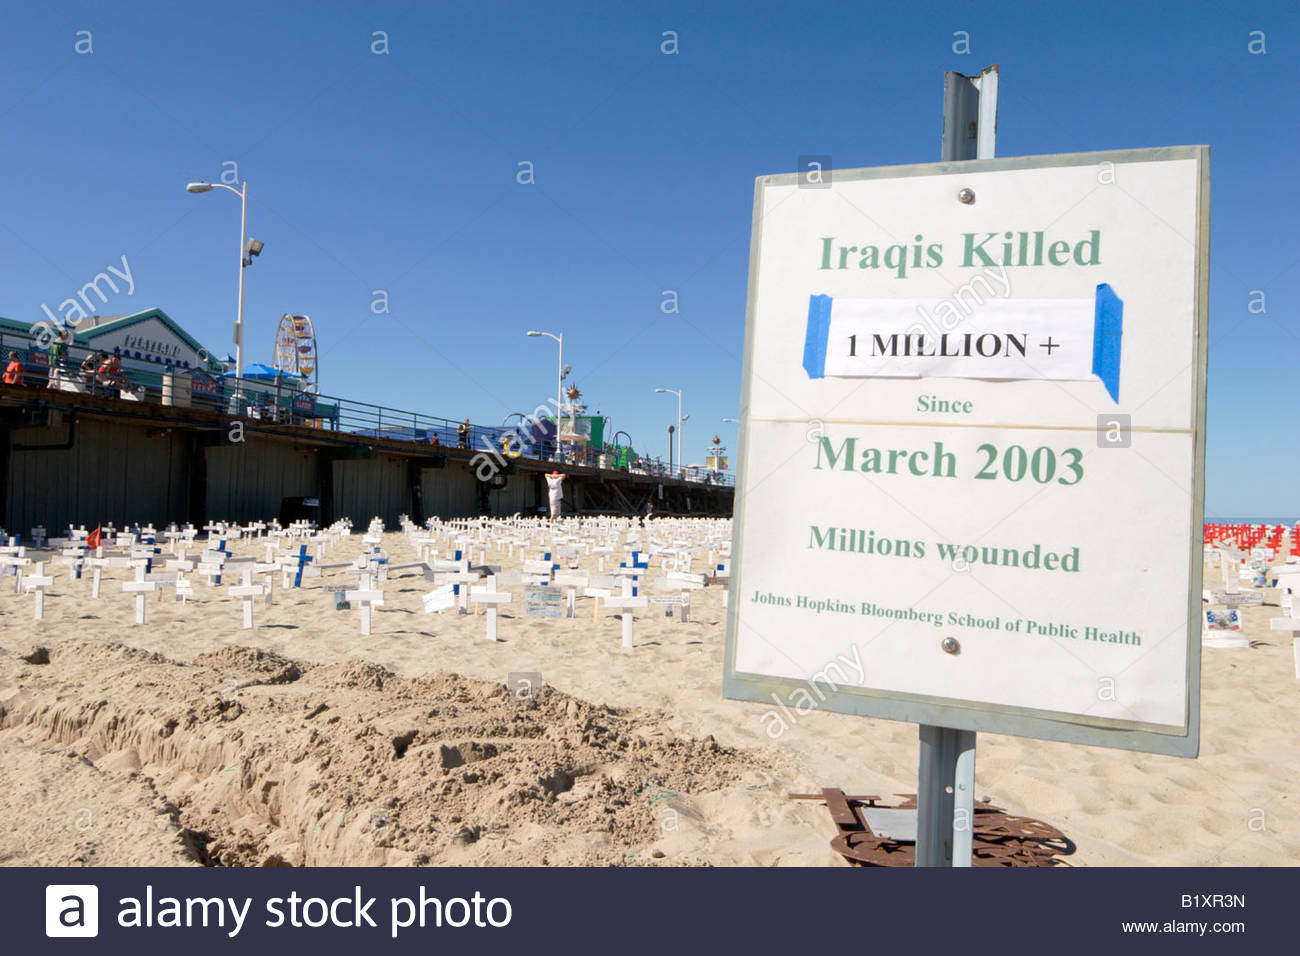 Tally of Iraqis Killed in Iraq War at Arlington West Memorial Santa Monica California - Stock Image